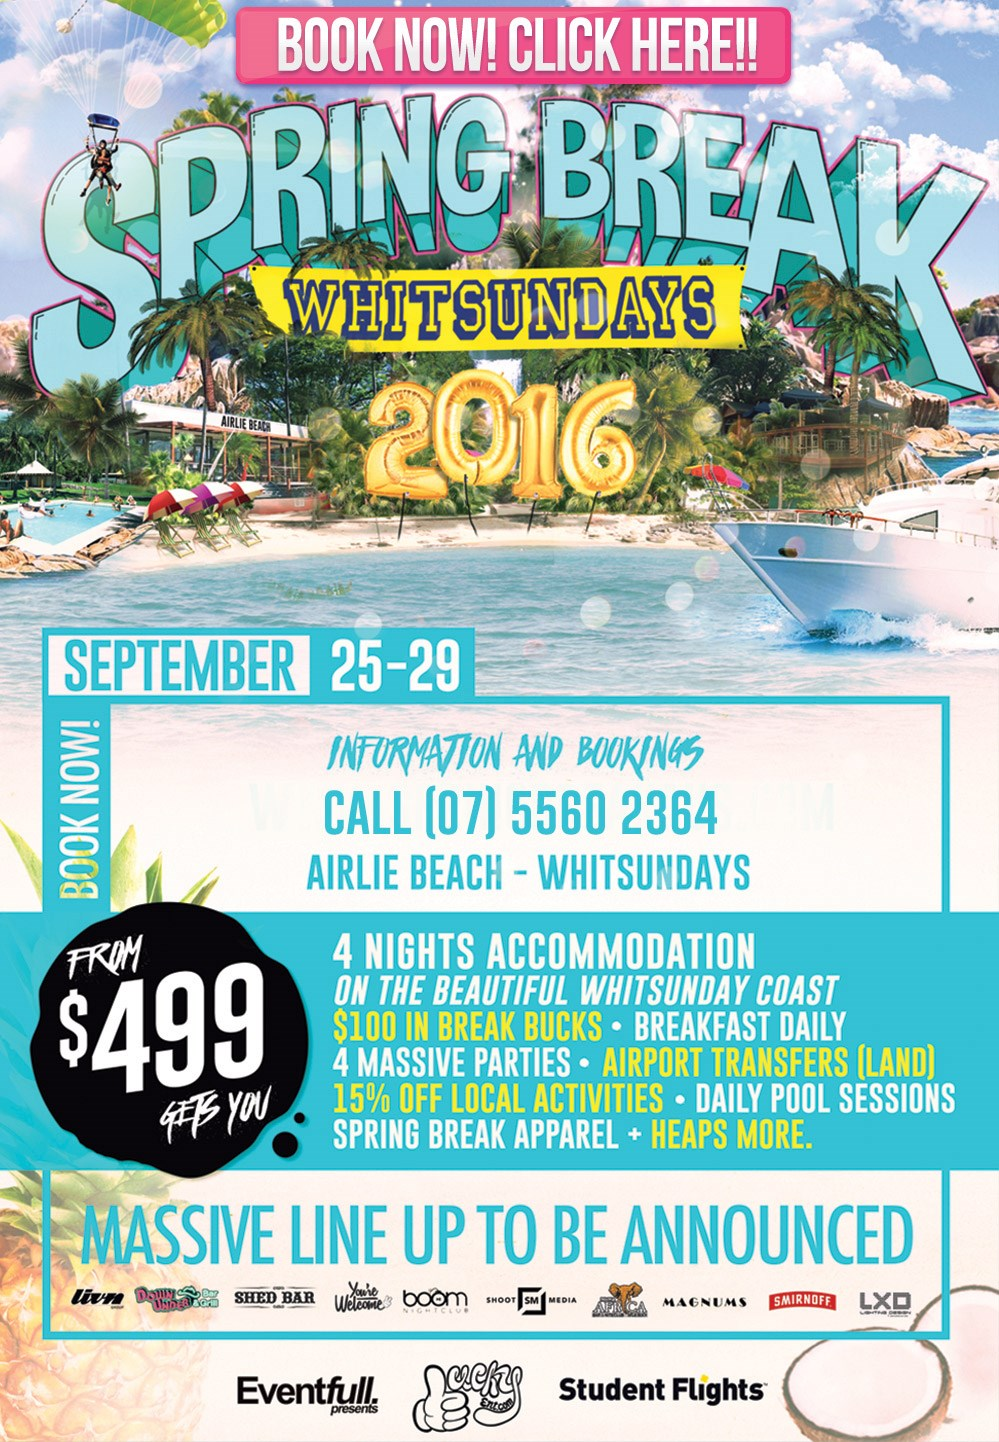 Spring Break Whitsundays 2016